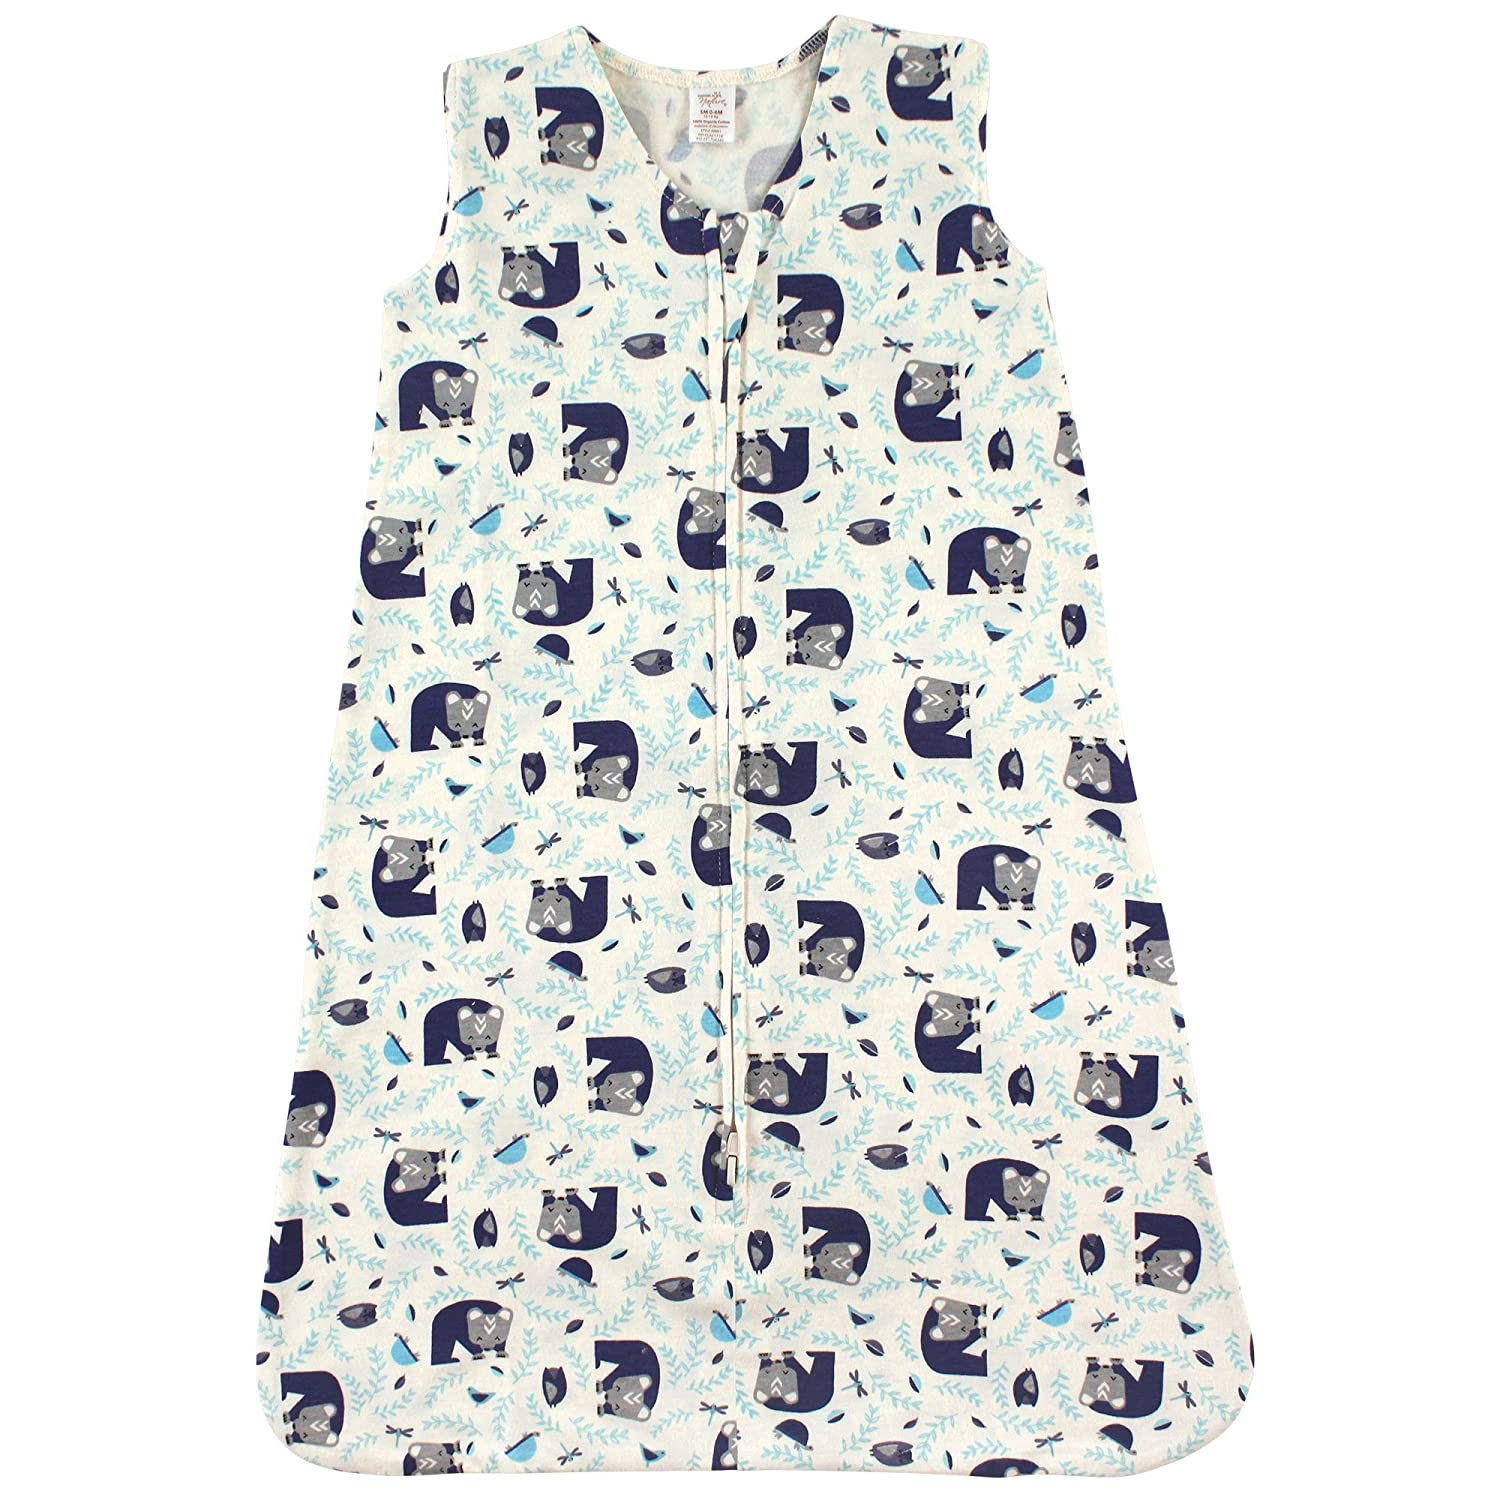 Touched by Nature Unisex Baby Safe Sleep Wearable Organic Cotton Sleeping Bag